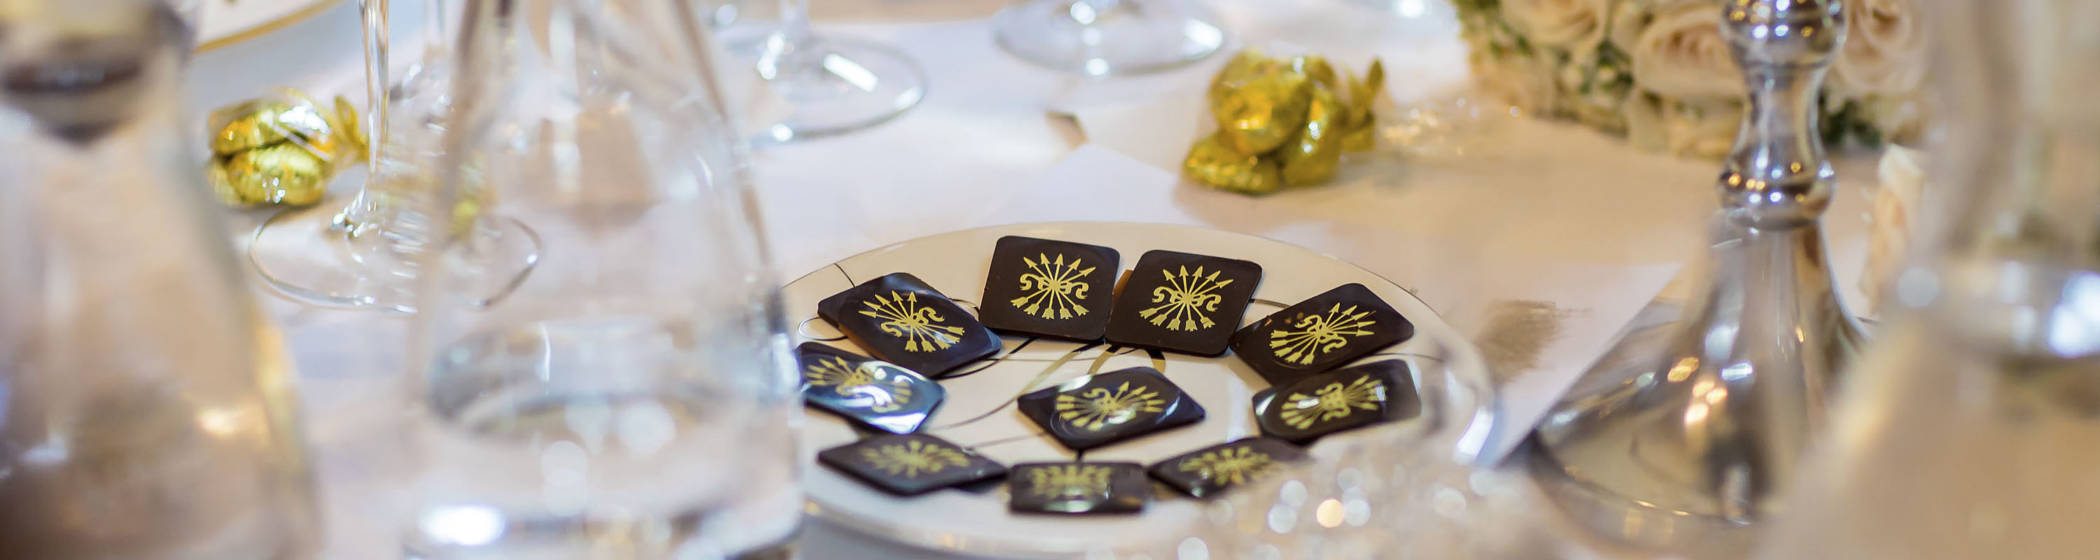 Chocolates on a table at a Waddesdon Manor wedding